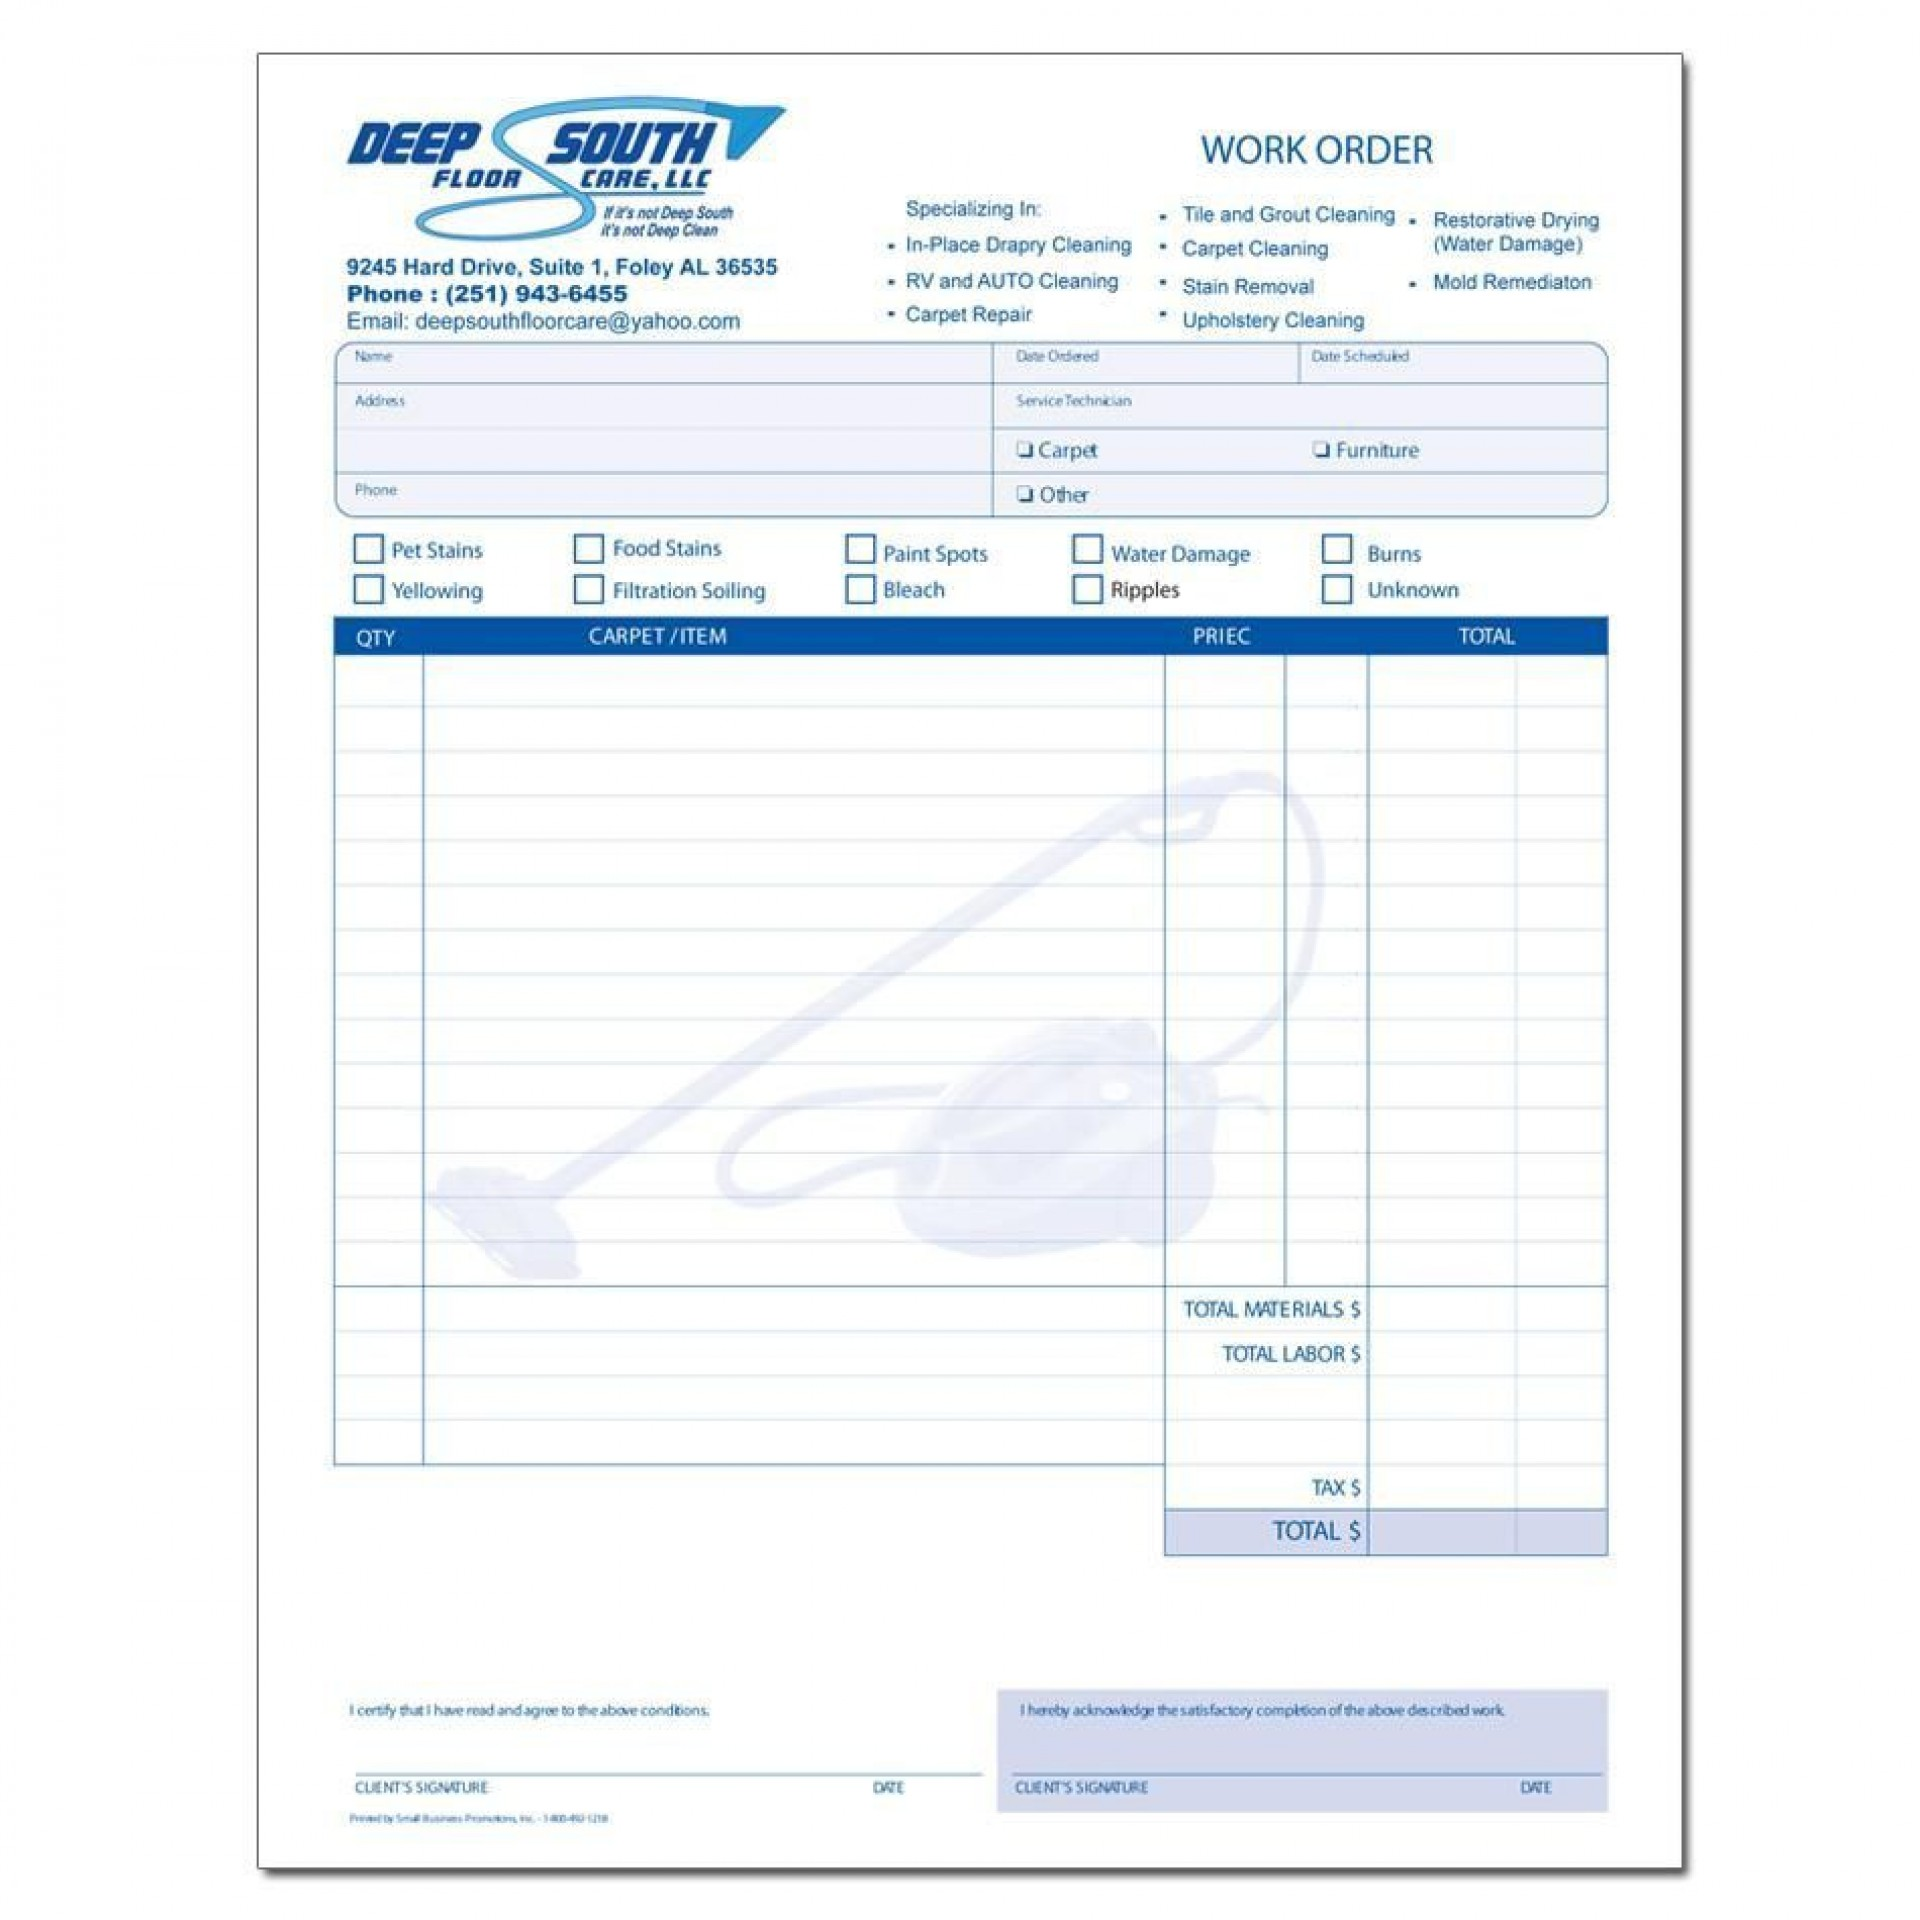 000 Staggering Cleaning Service Invoice Template Highest Clarity  Uk1920